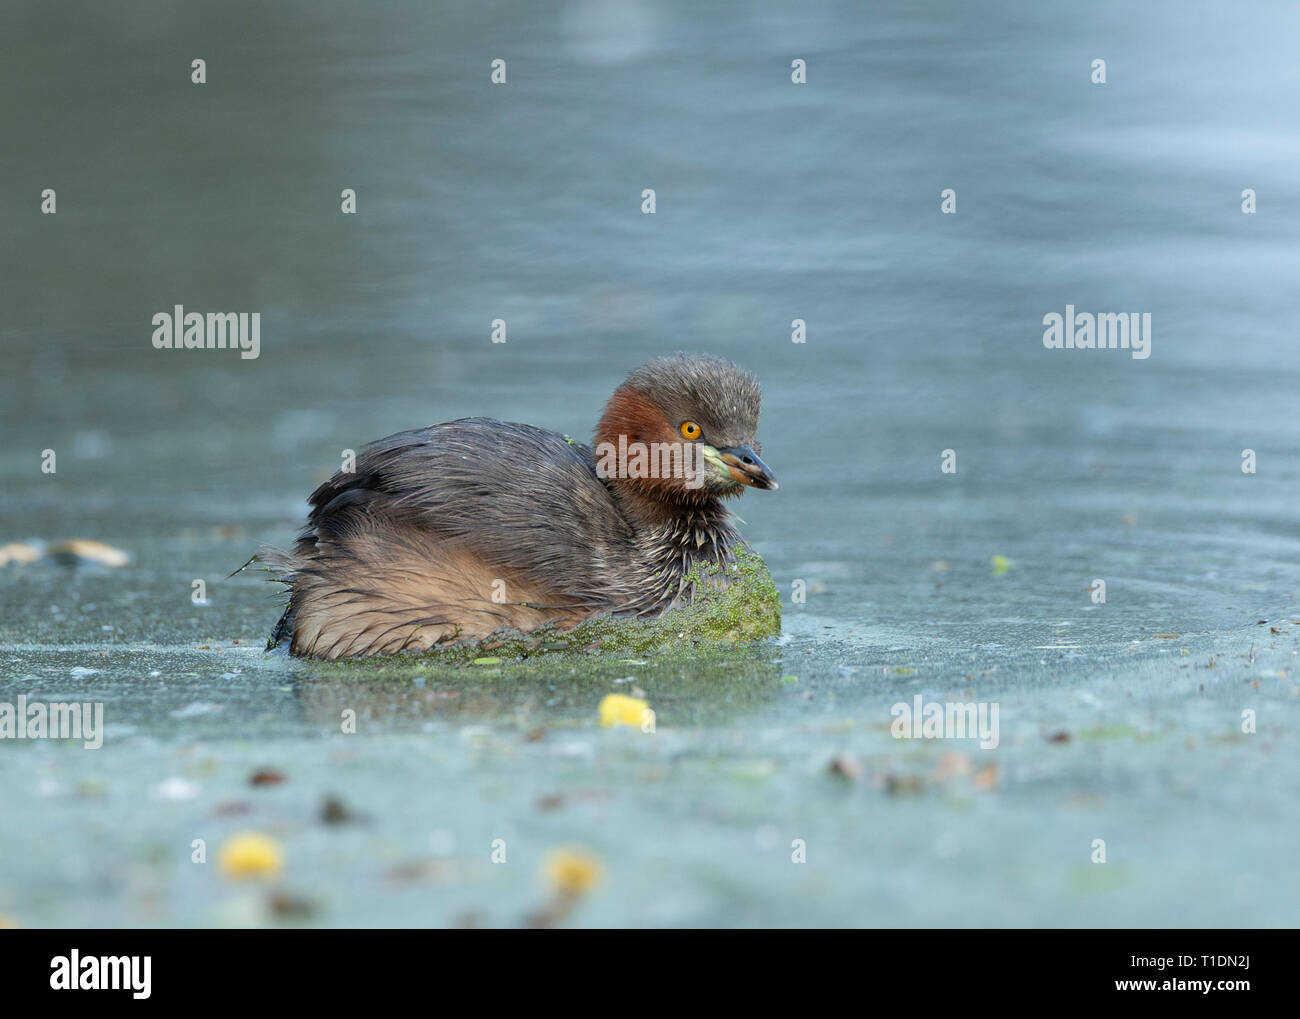 Little Grebe at Bharatpur Bird Sanctuary,Rajasthan,India - Stock Image